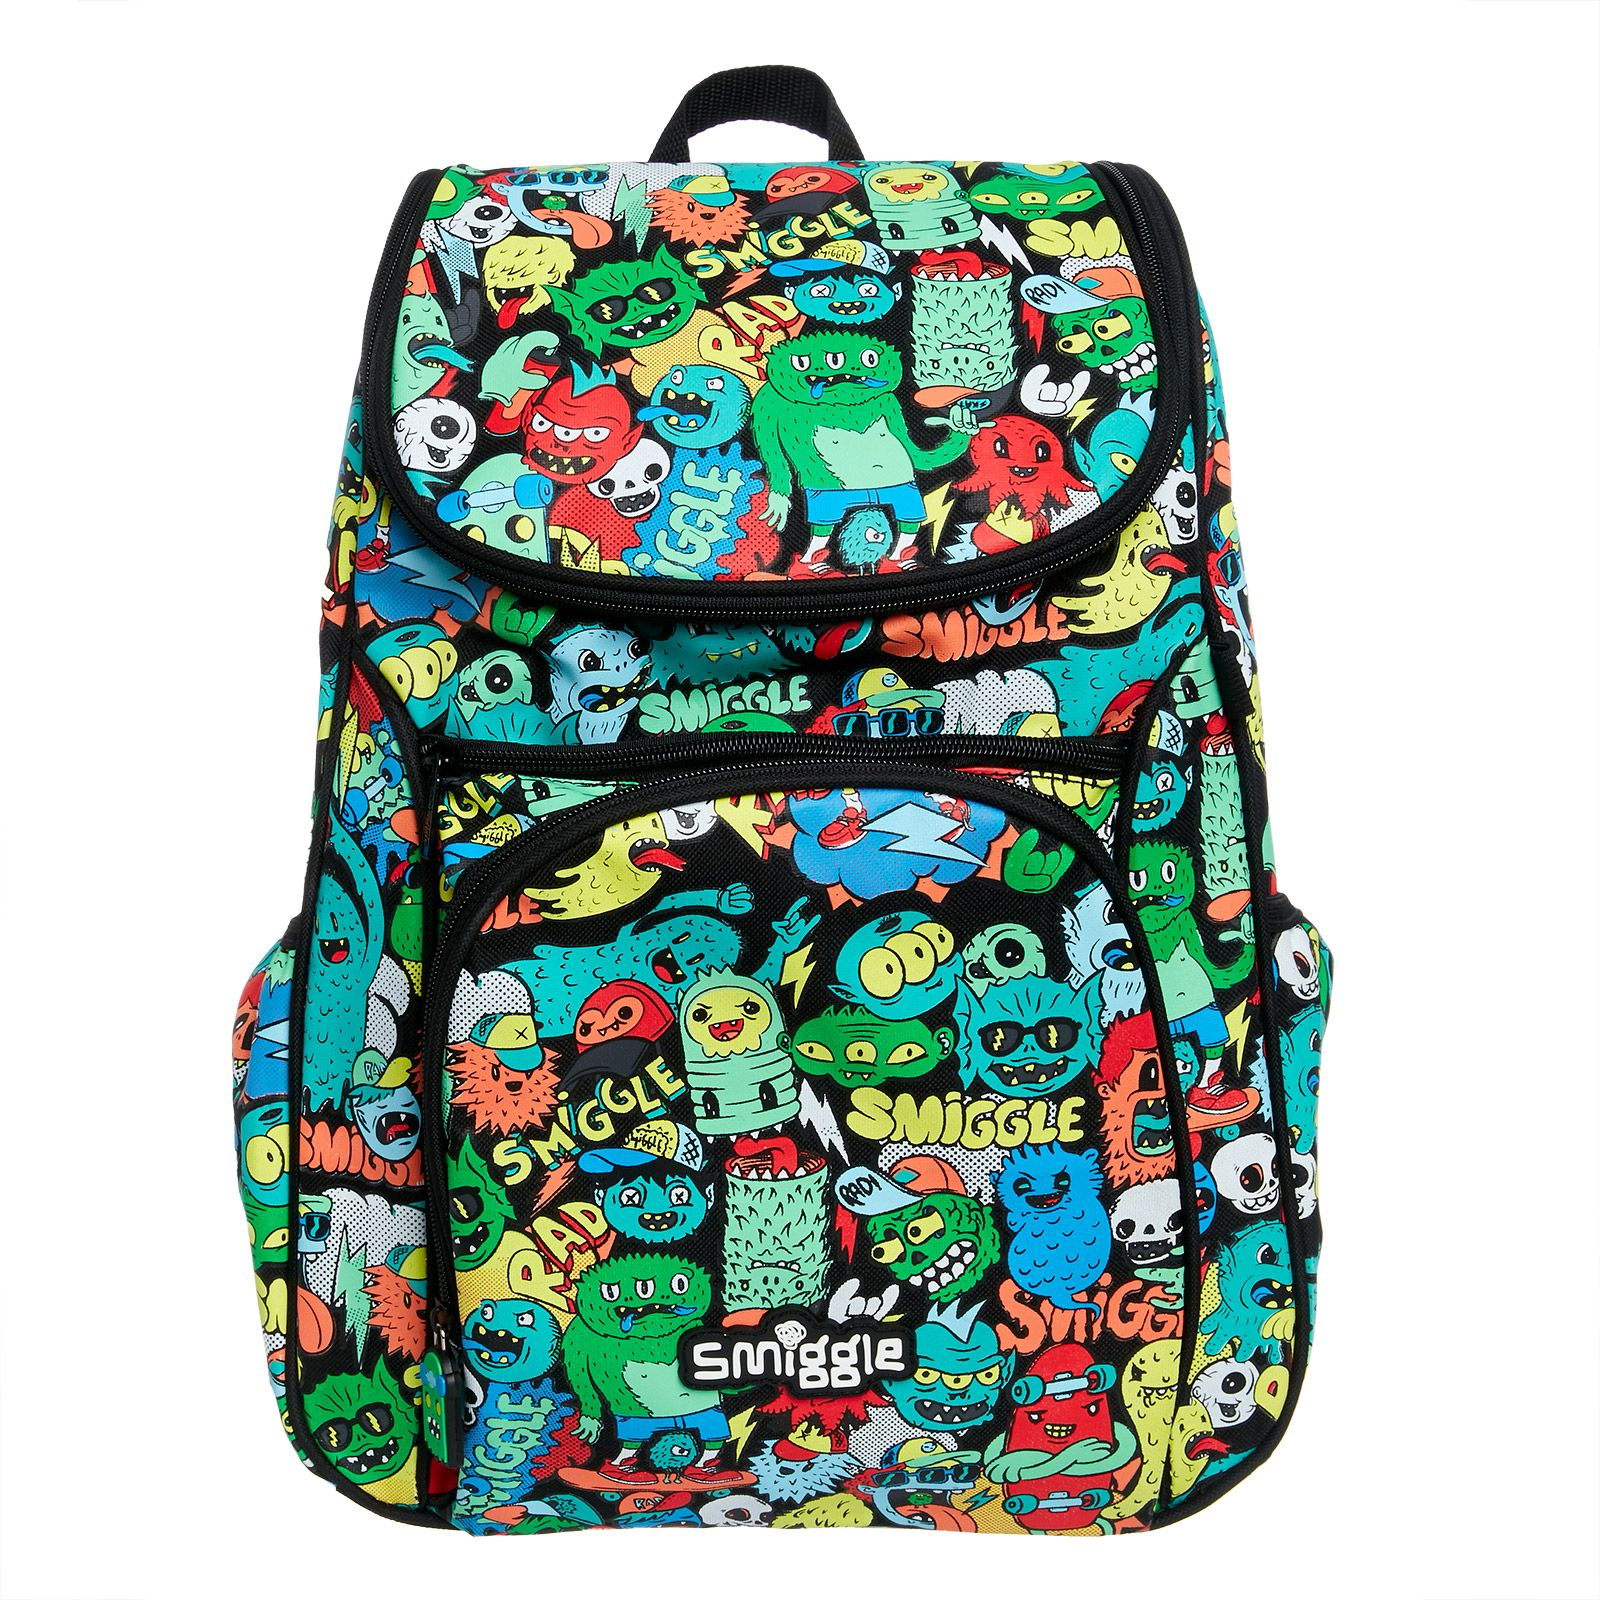 Smiggle Says Access Backpack Uk